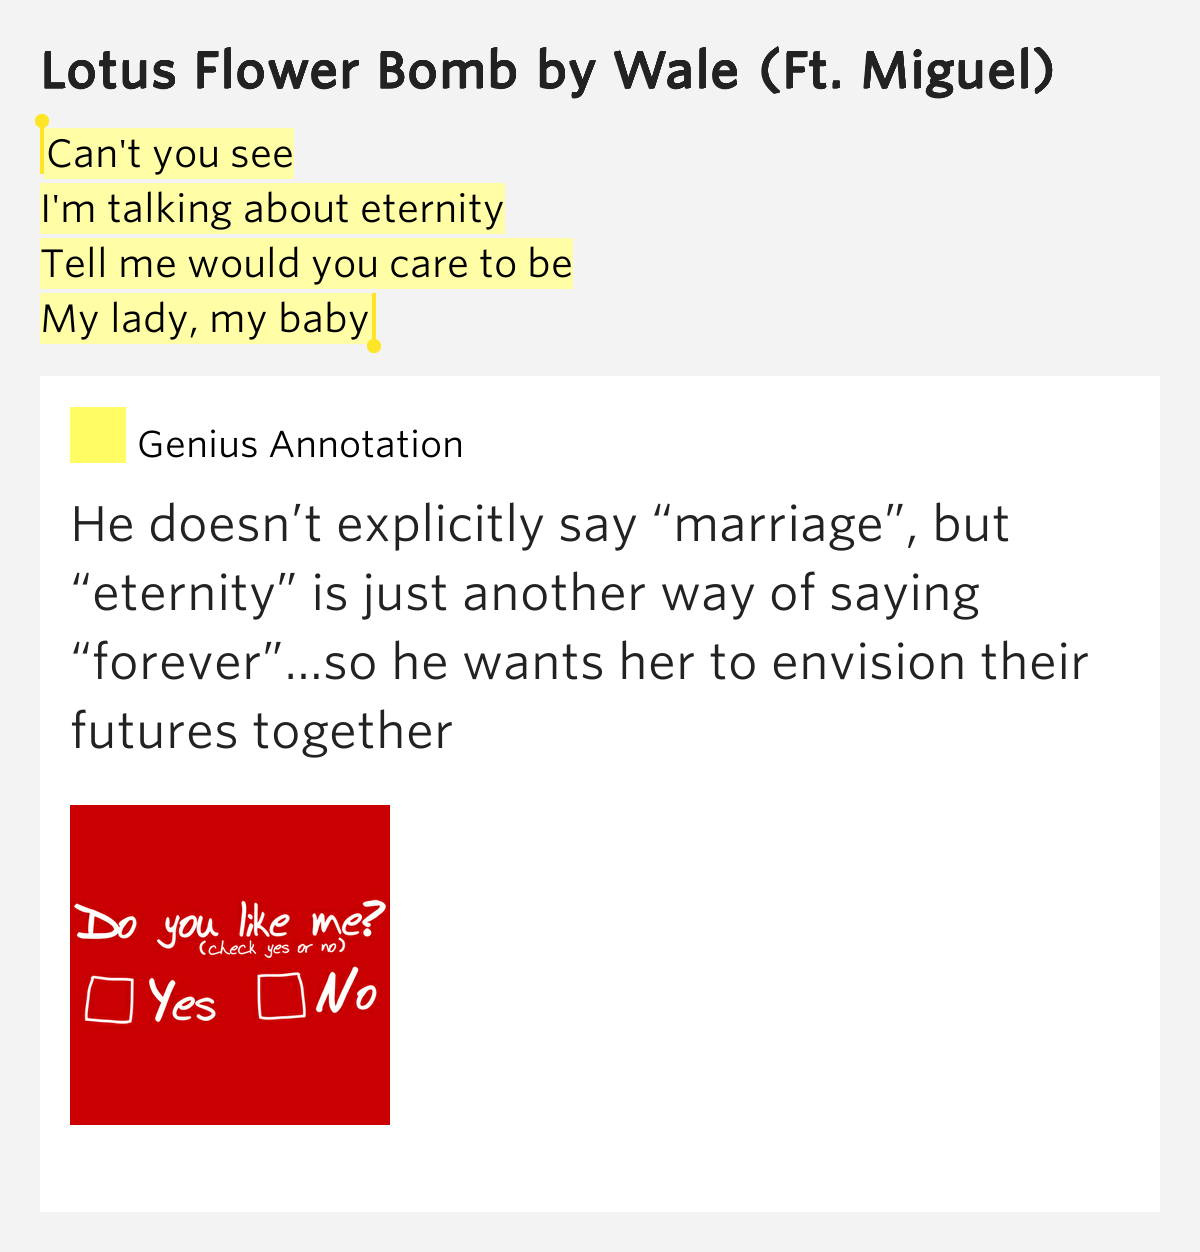 Wale ft miguel lotus flower bomb lyrics gallery flower decoration lyrics to lotus flower gallery beautiful exotic flowers wale ft miguel lotus flower bomb lyrics images izmirmasajfo